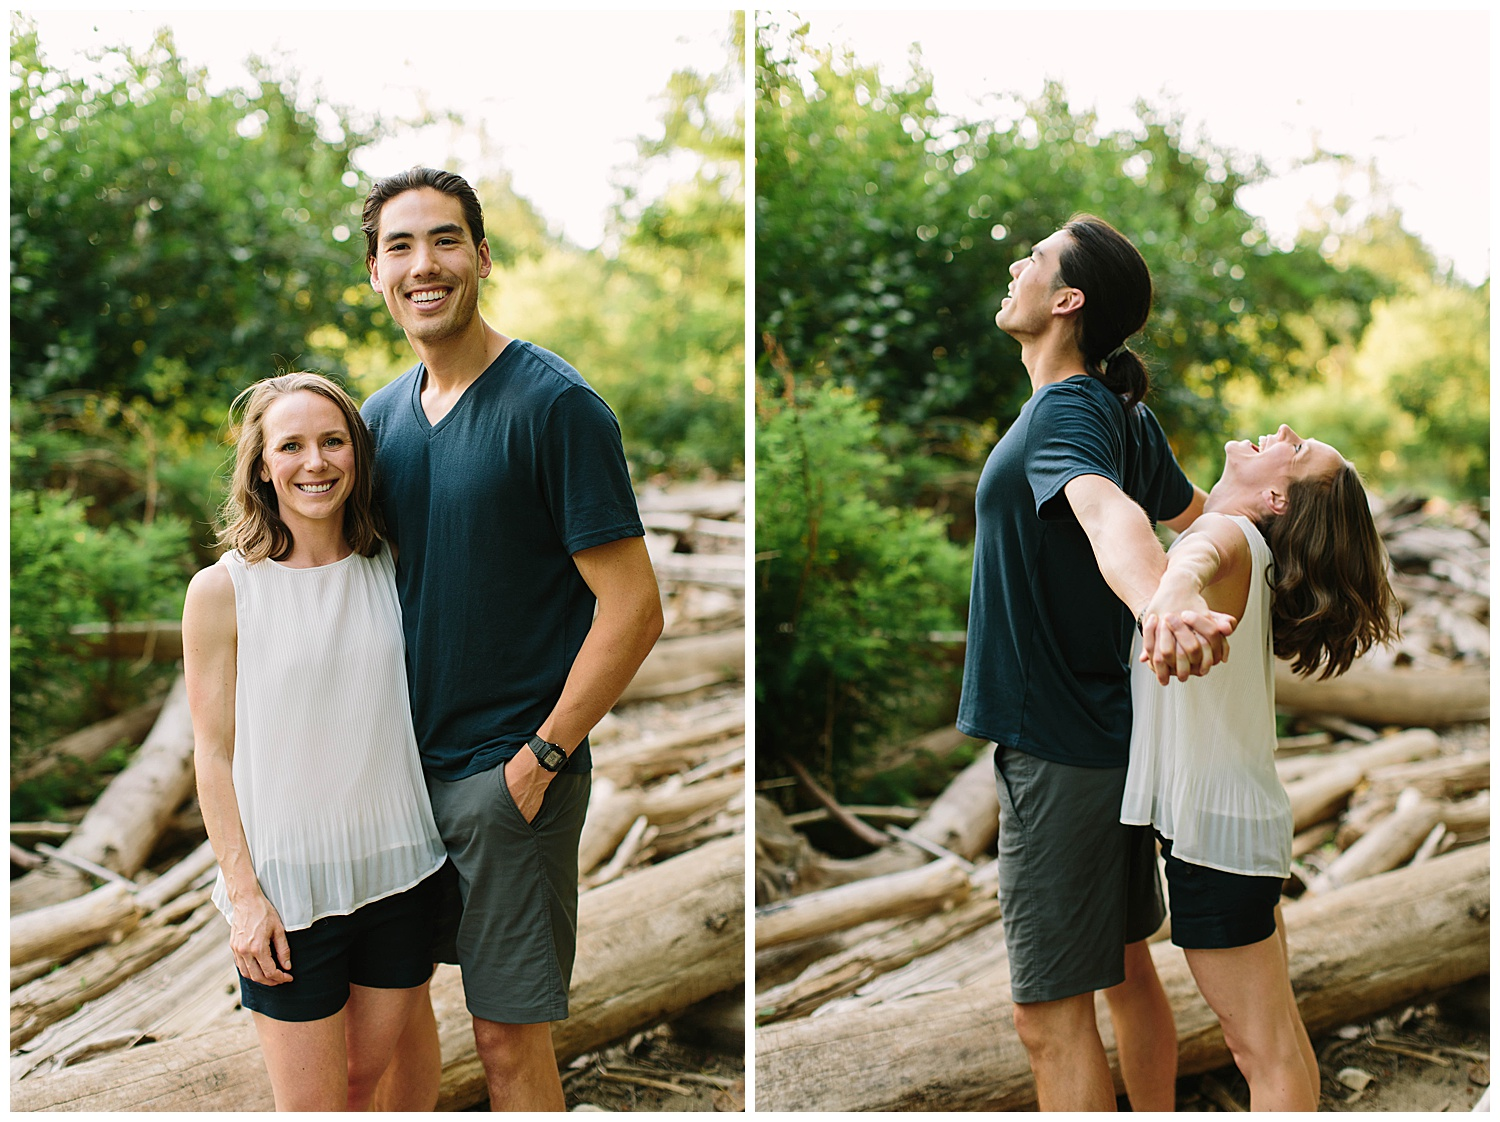 trent.and.kendra.photography.falls.of.the.ohio.engagement.session-22.jpg